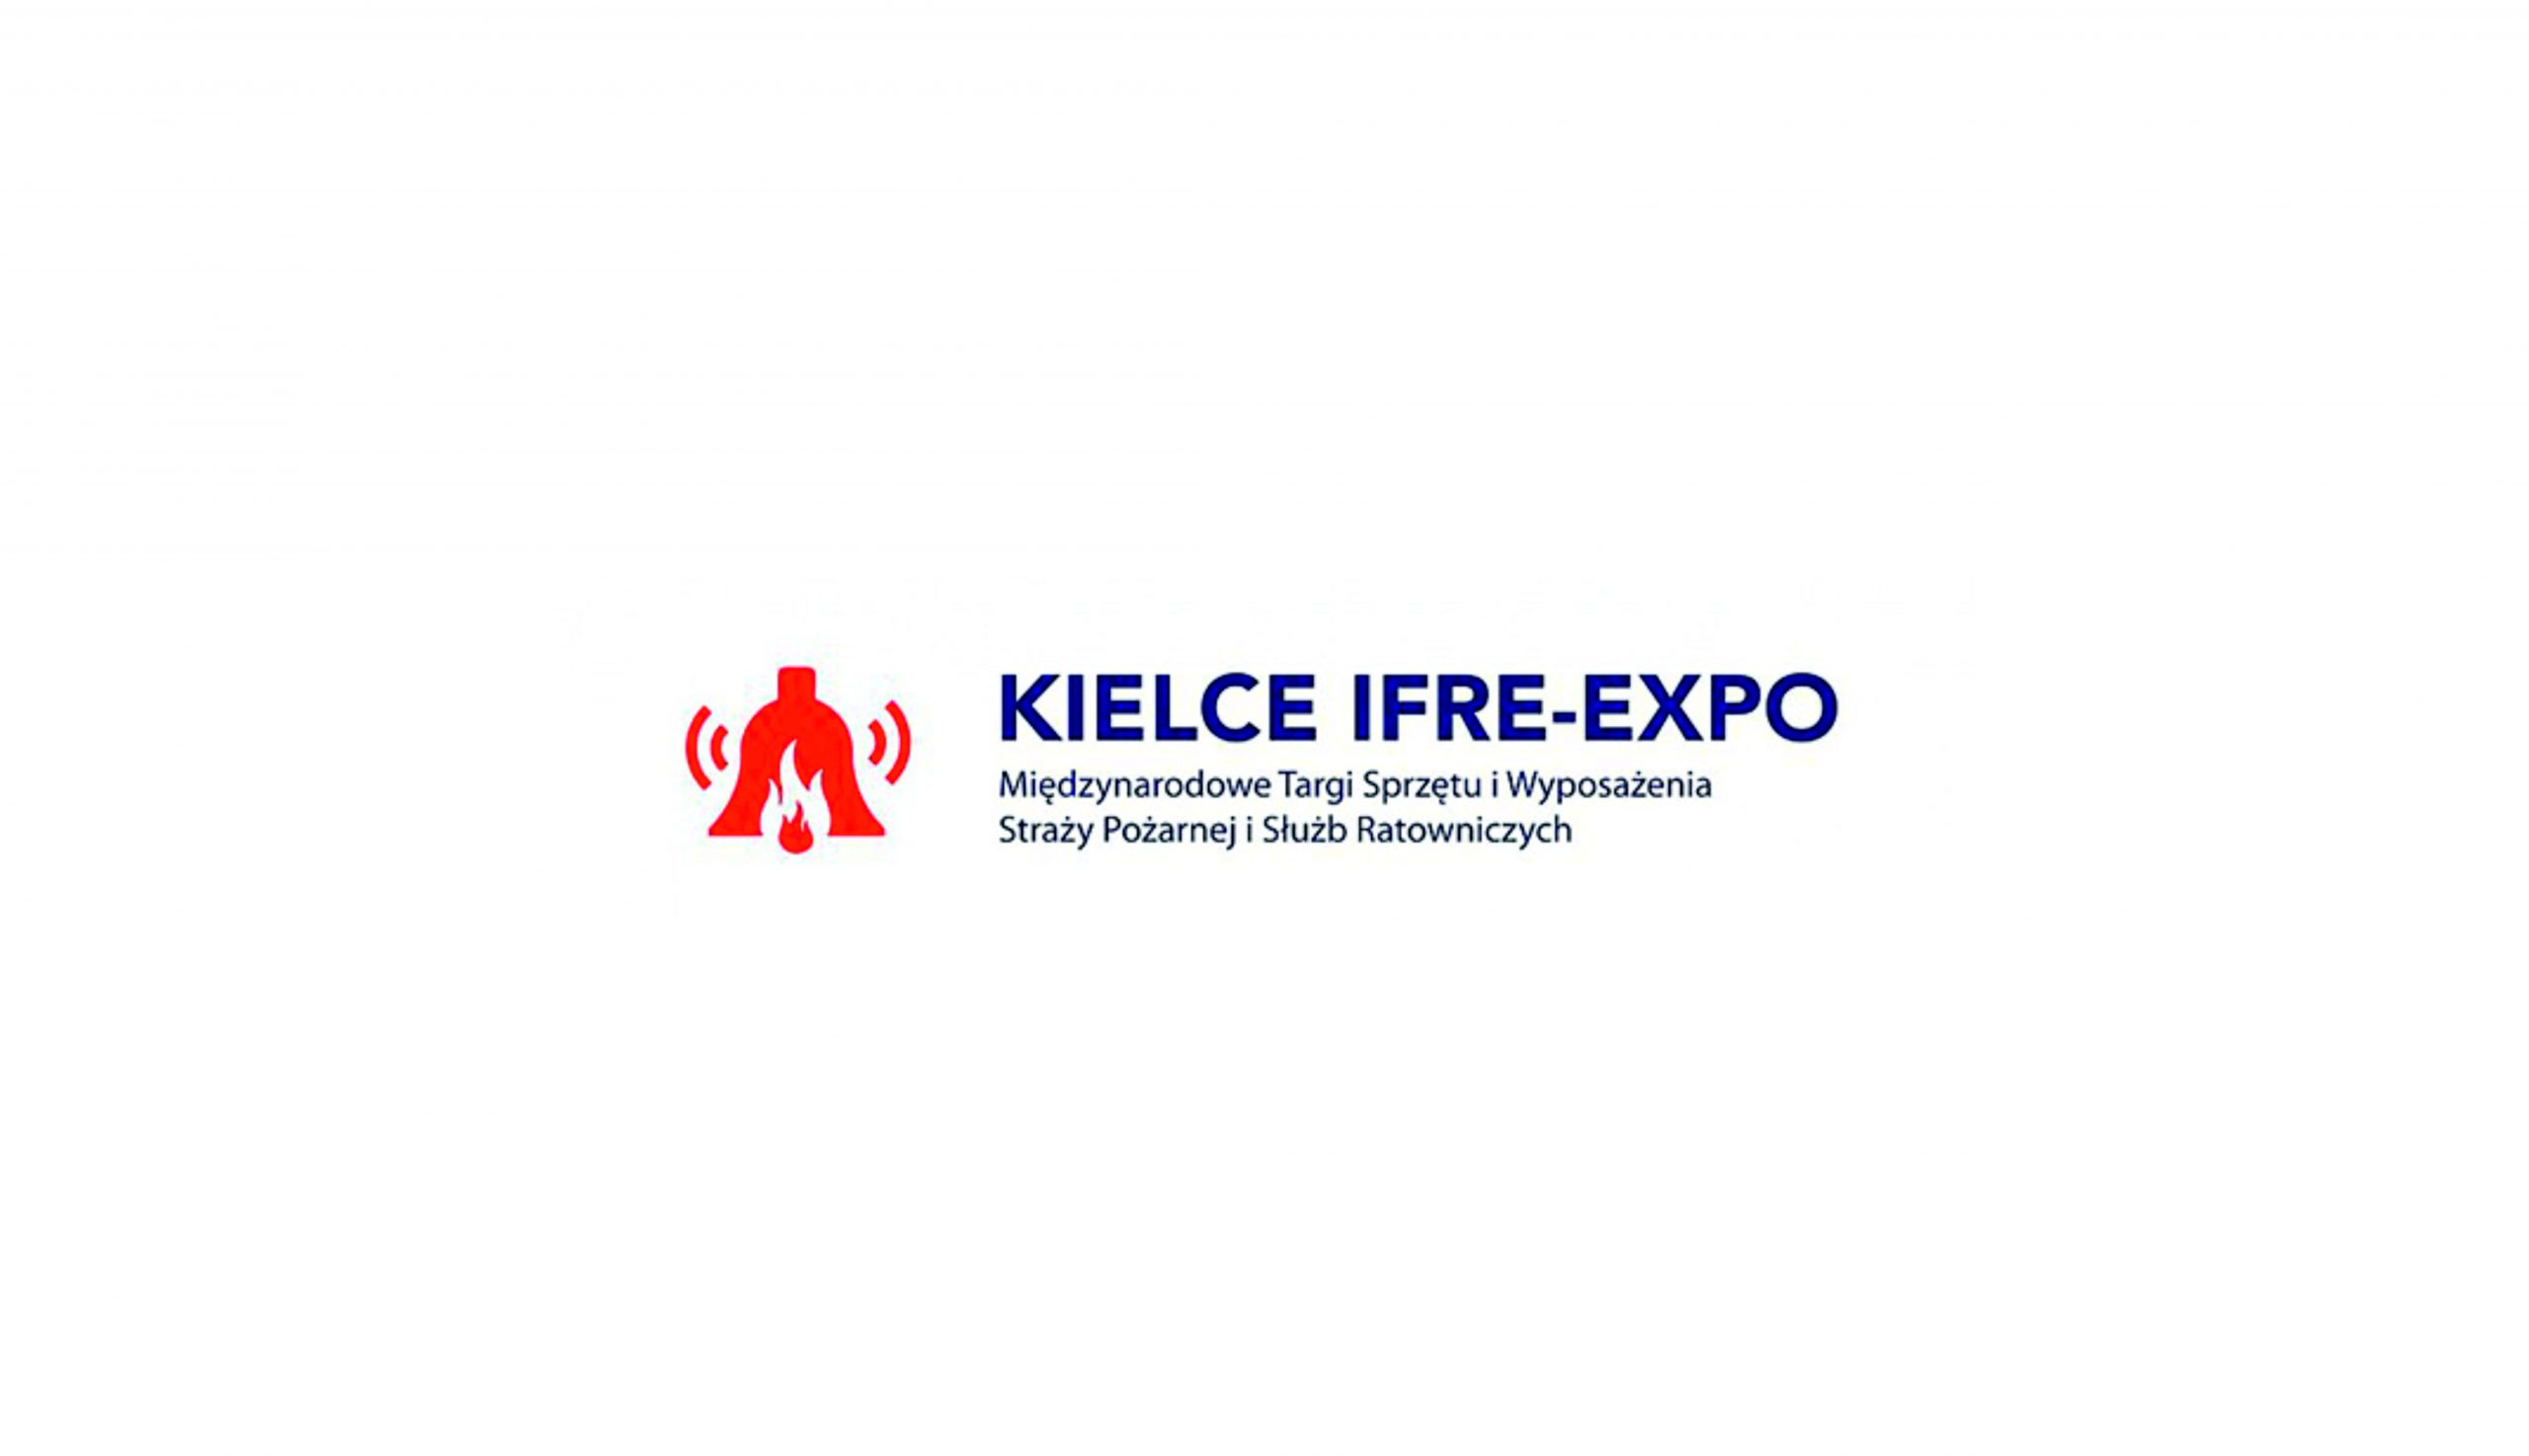 IFRE-EXPO, Kielce – 08 do 10.06.2017 r.